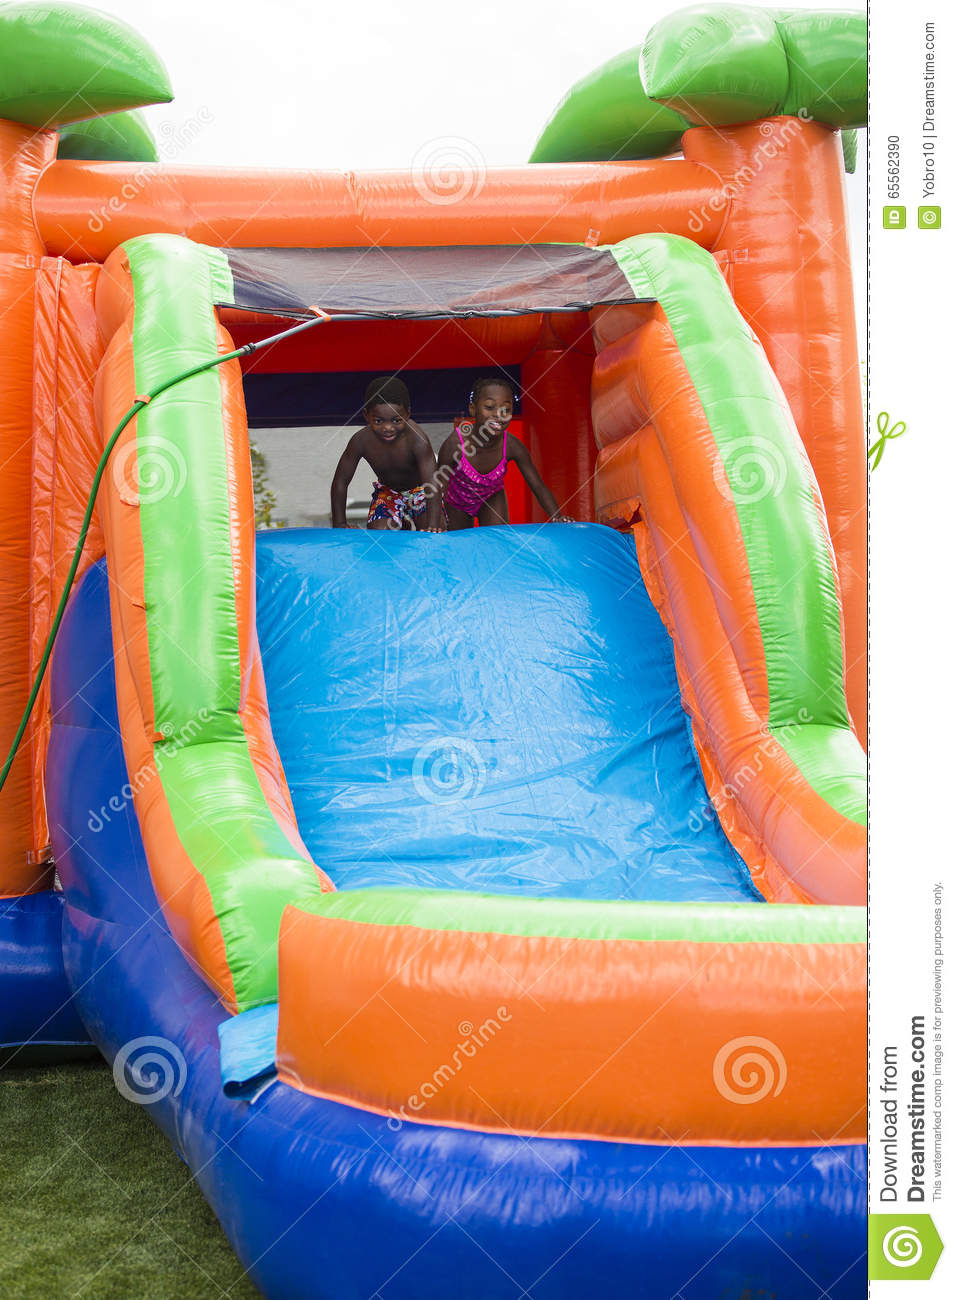 Kids Playing On An Inflatable Slide Bounce House Royalty